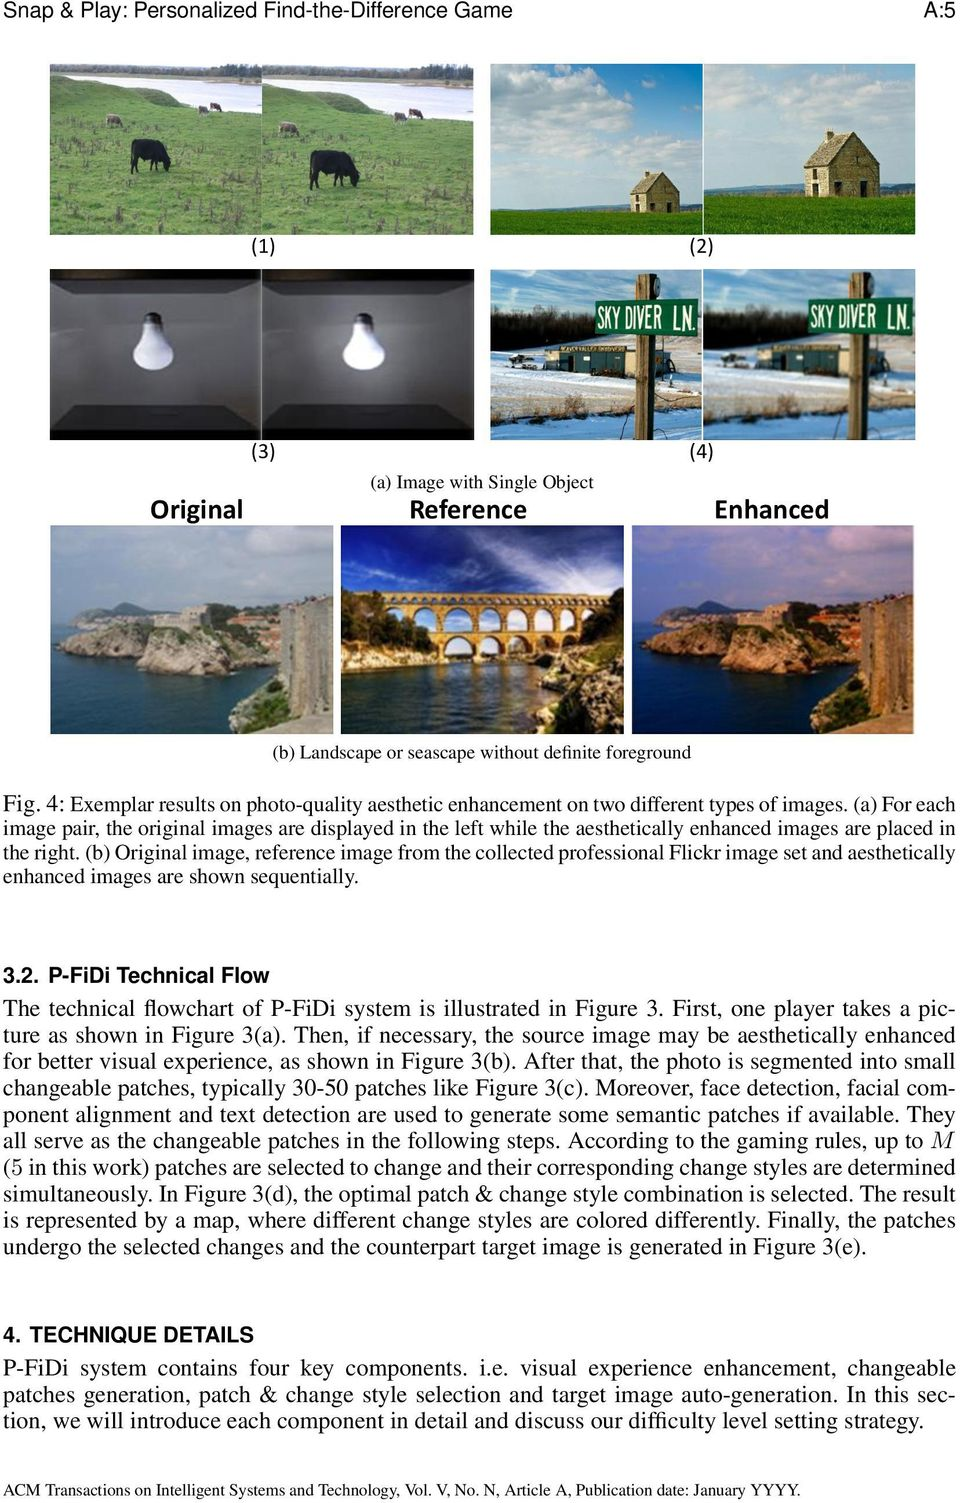 (a) For each image pair, the original images are displayed in the left while the aesthetically enhanced images are placed in the right.